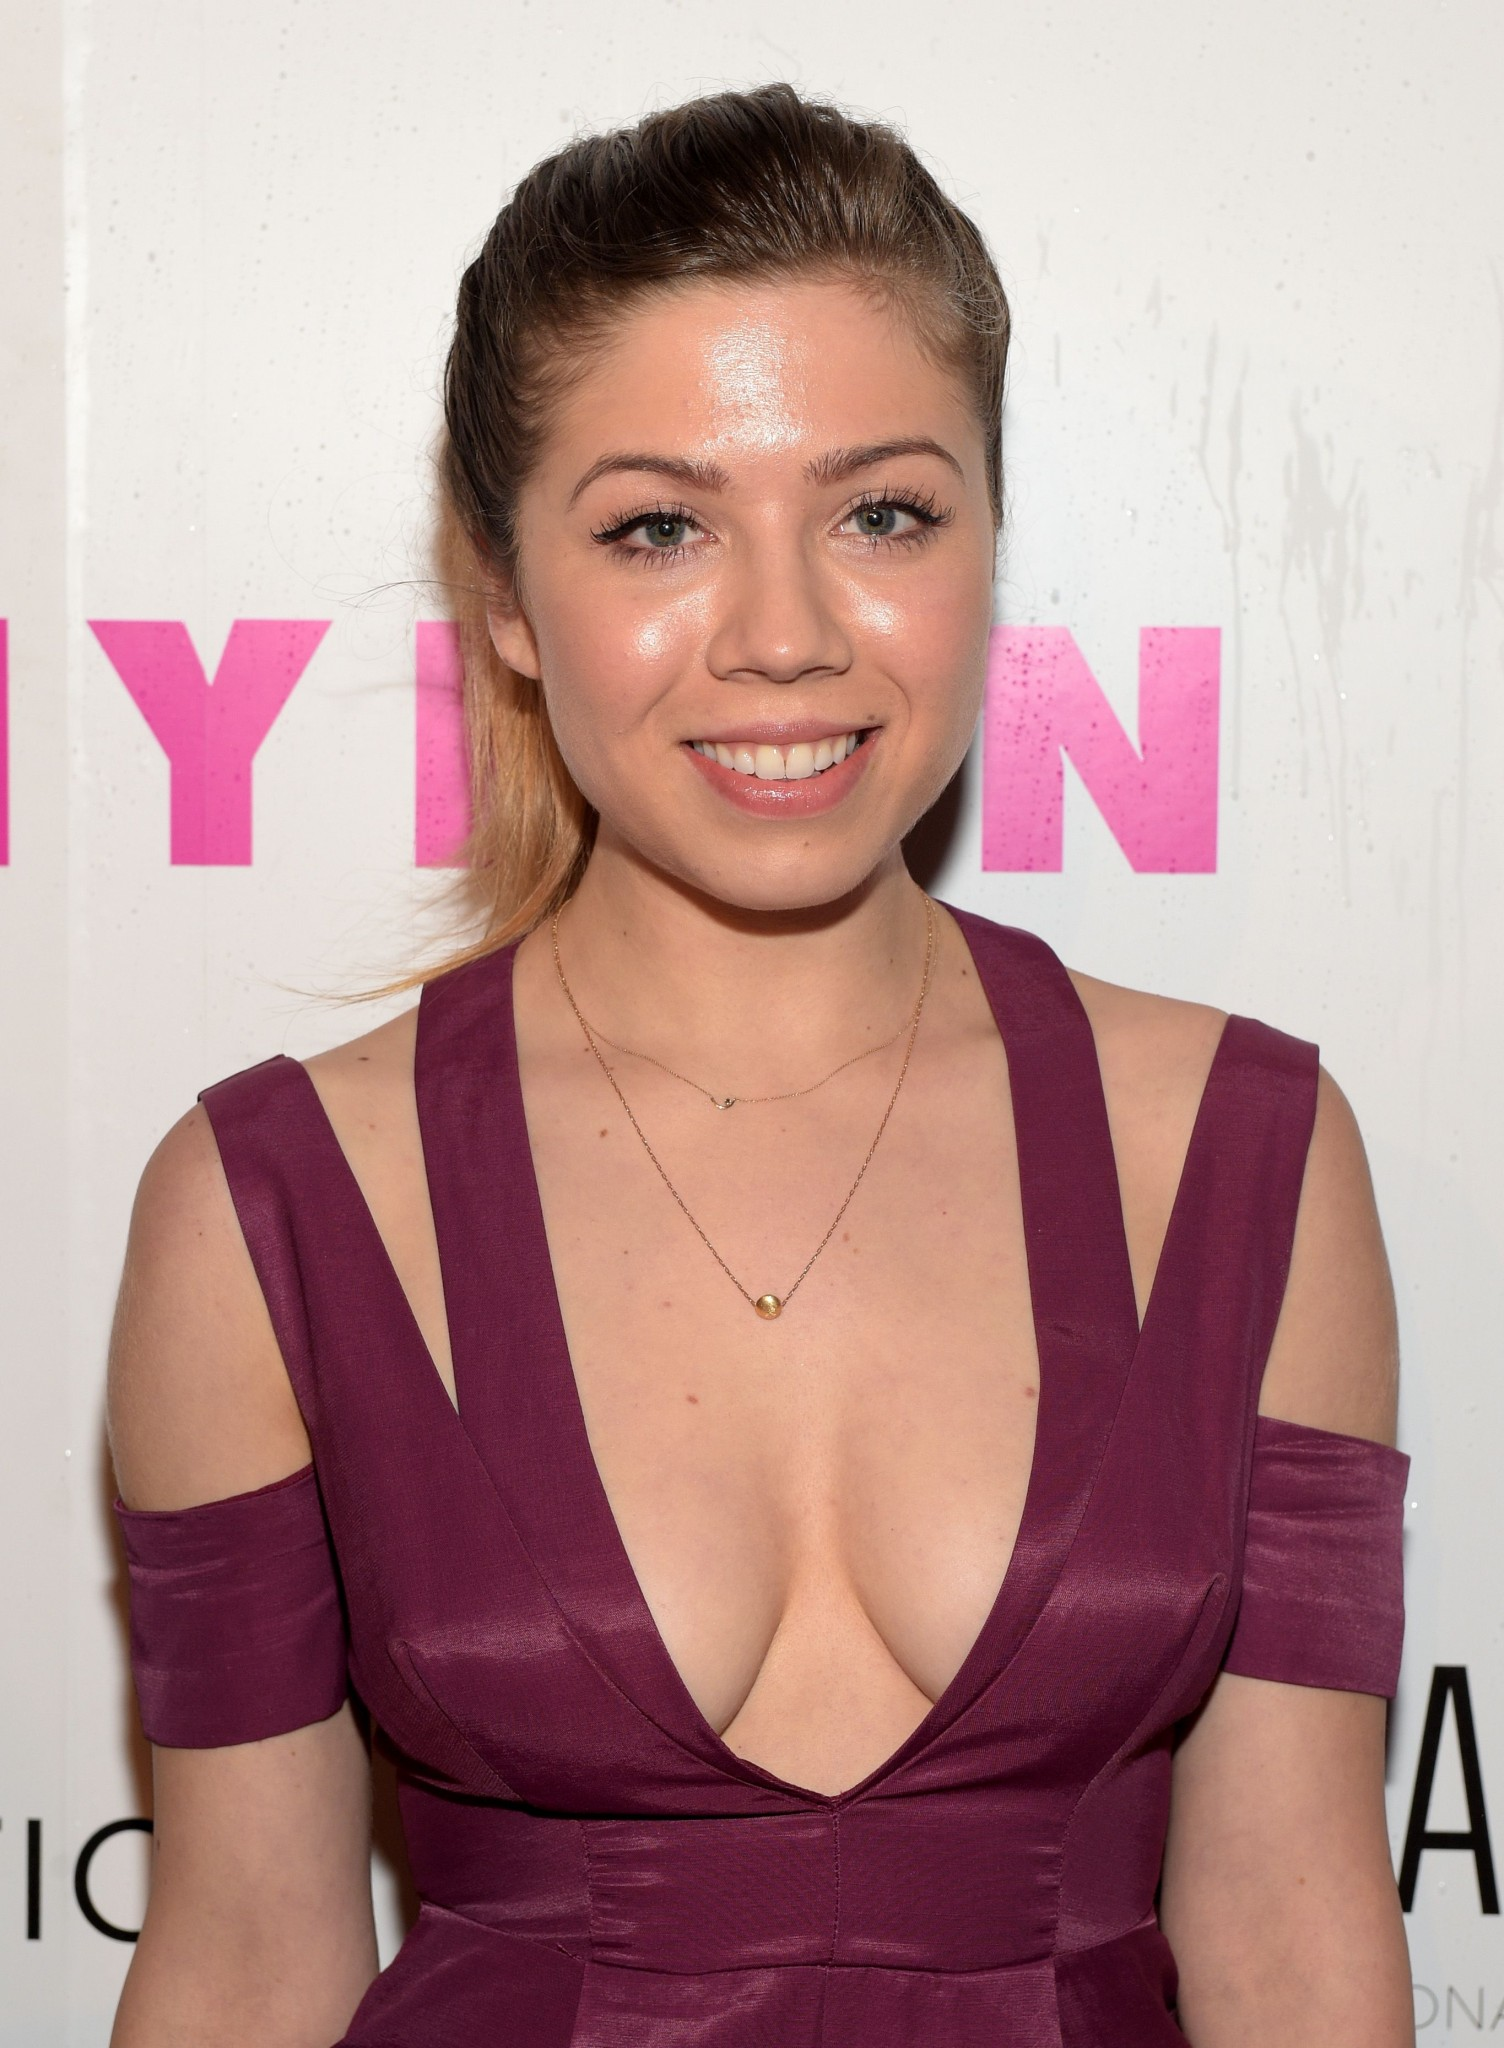 jennette-mccurdy-cleavage-at-nylon-young-hollywood-party-2